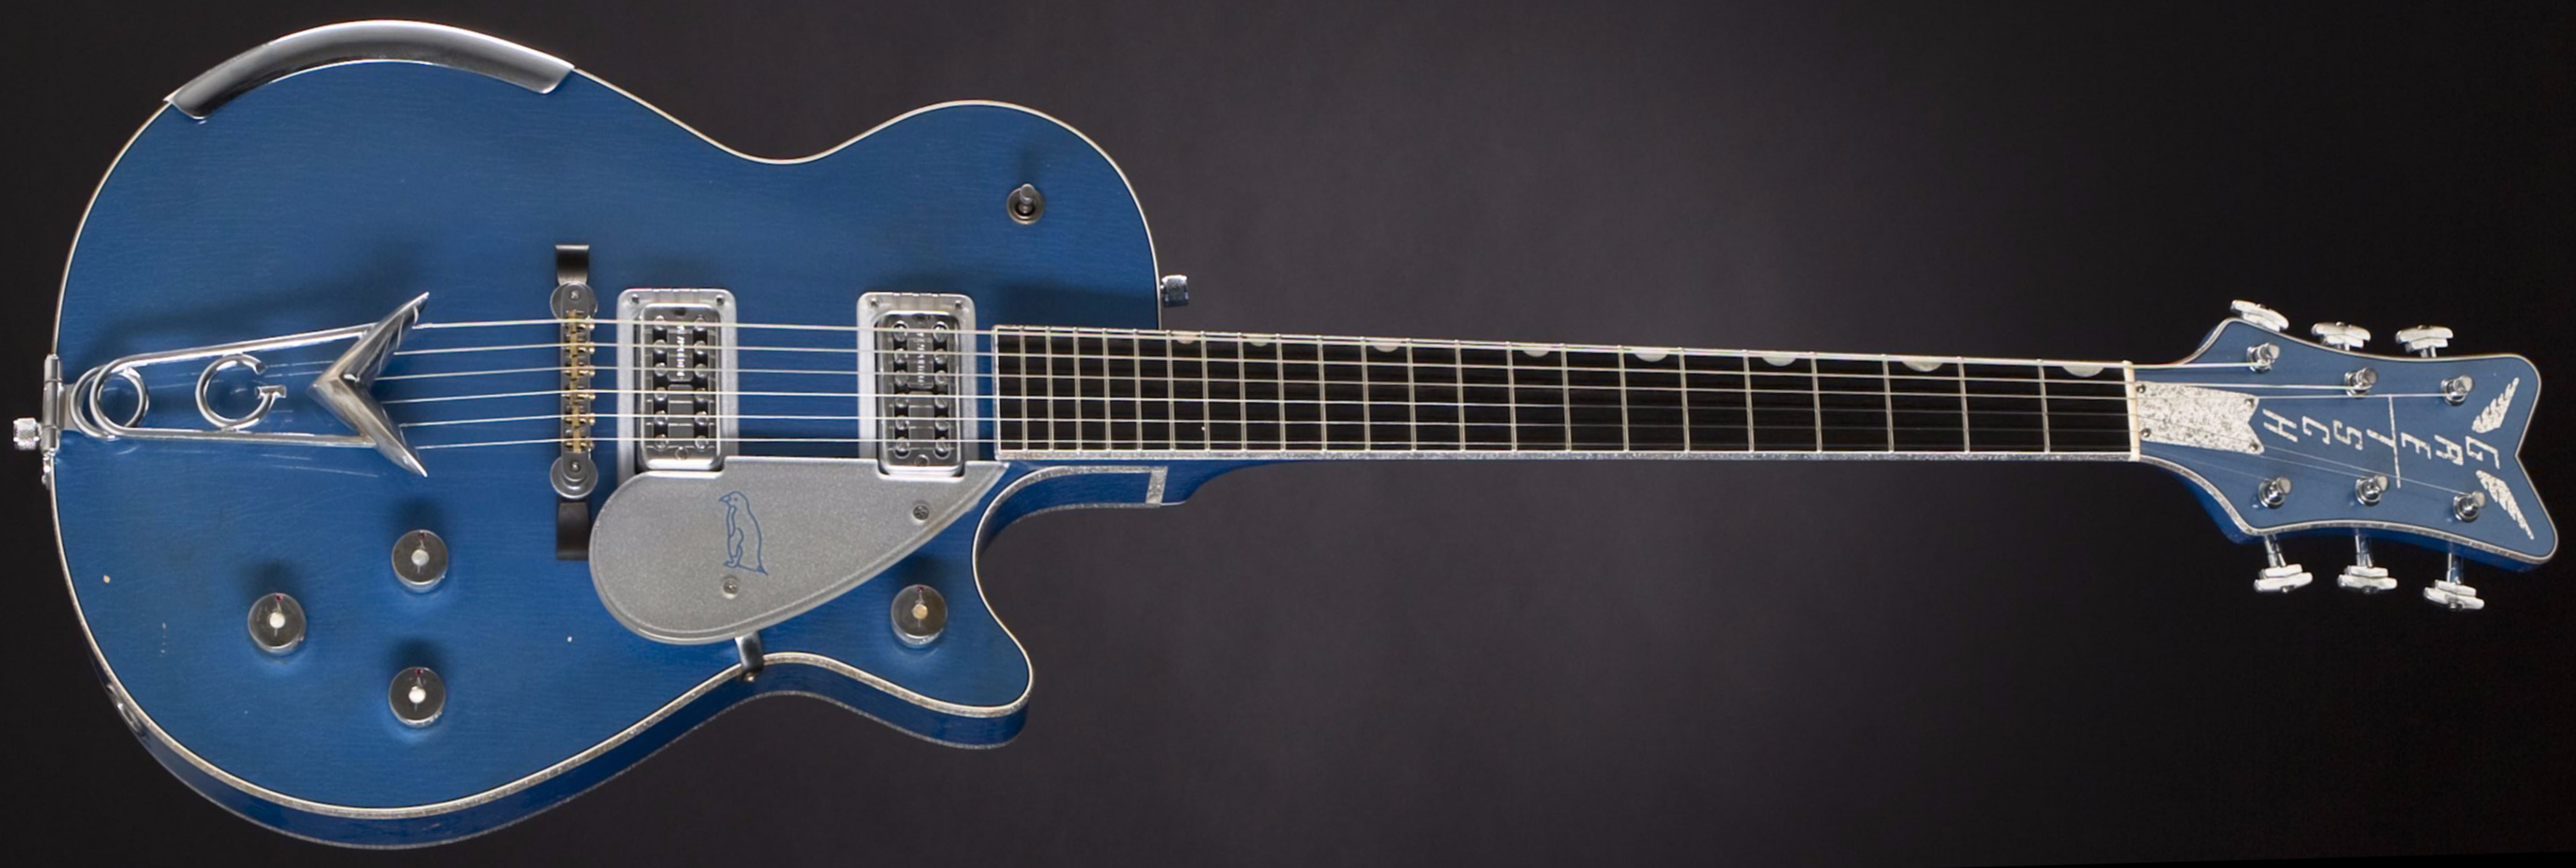 GRETSCH G6134-CS Penguin Lake Placid Blue